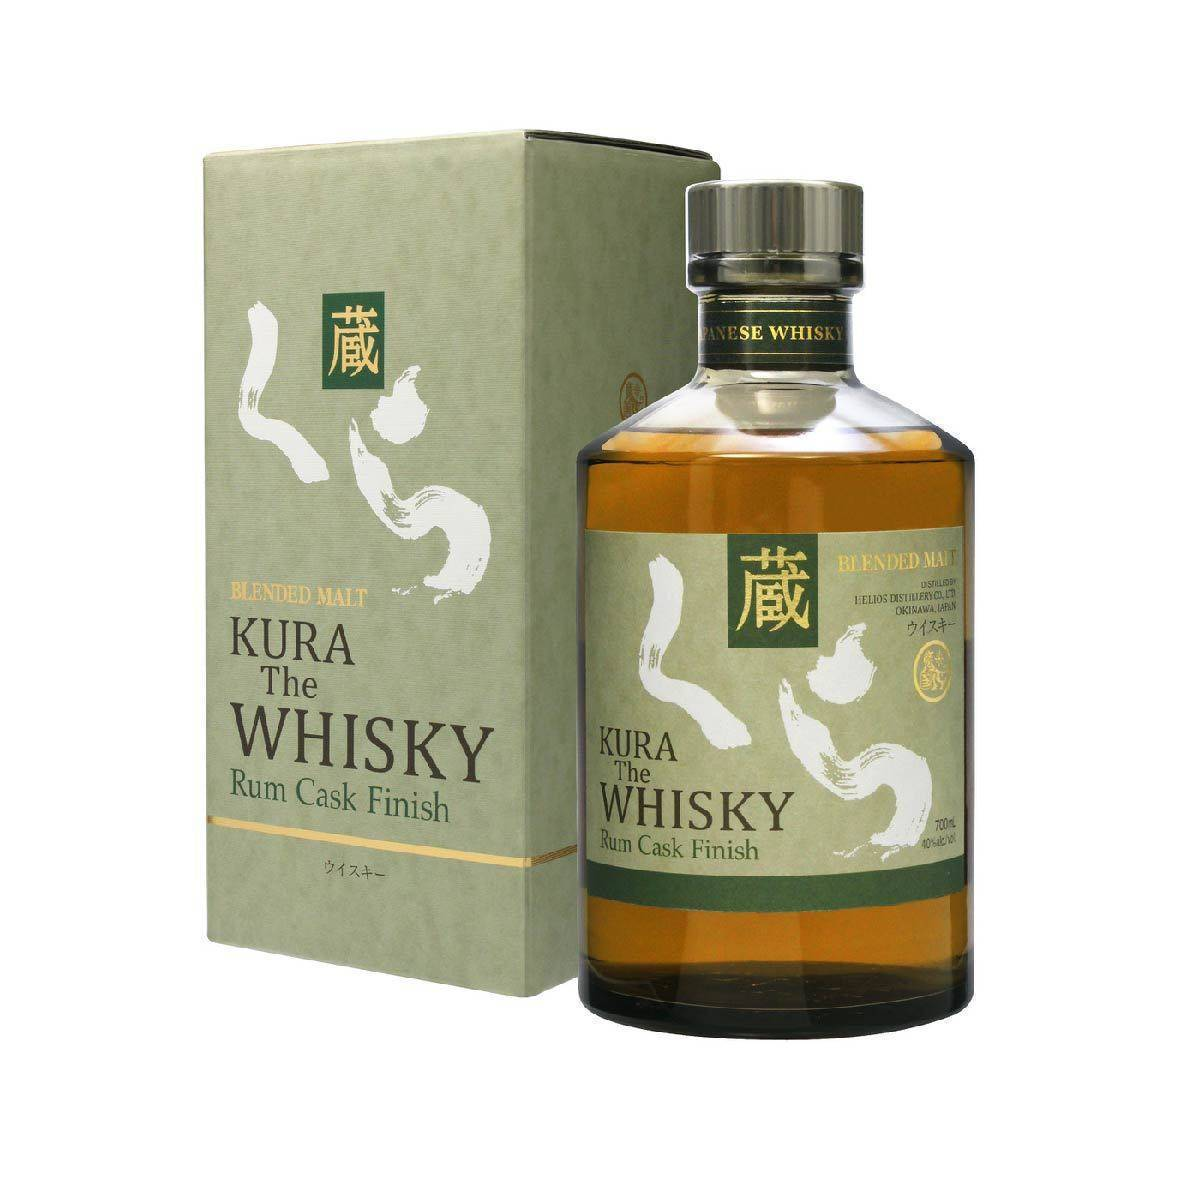 Kura Rum Cask Finish Japanese Whisky 700mL - Uptown Liquor